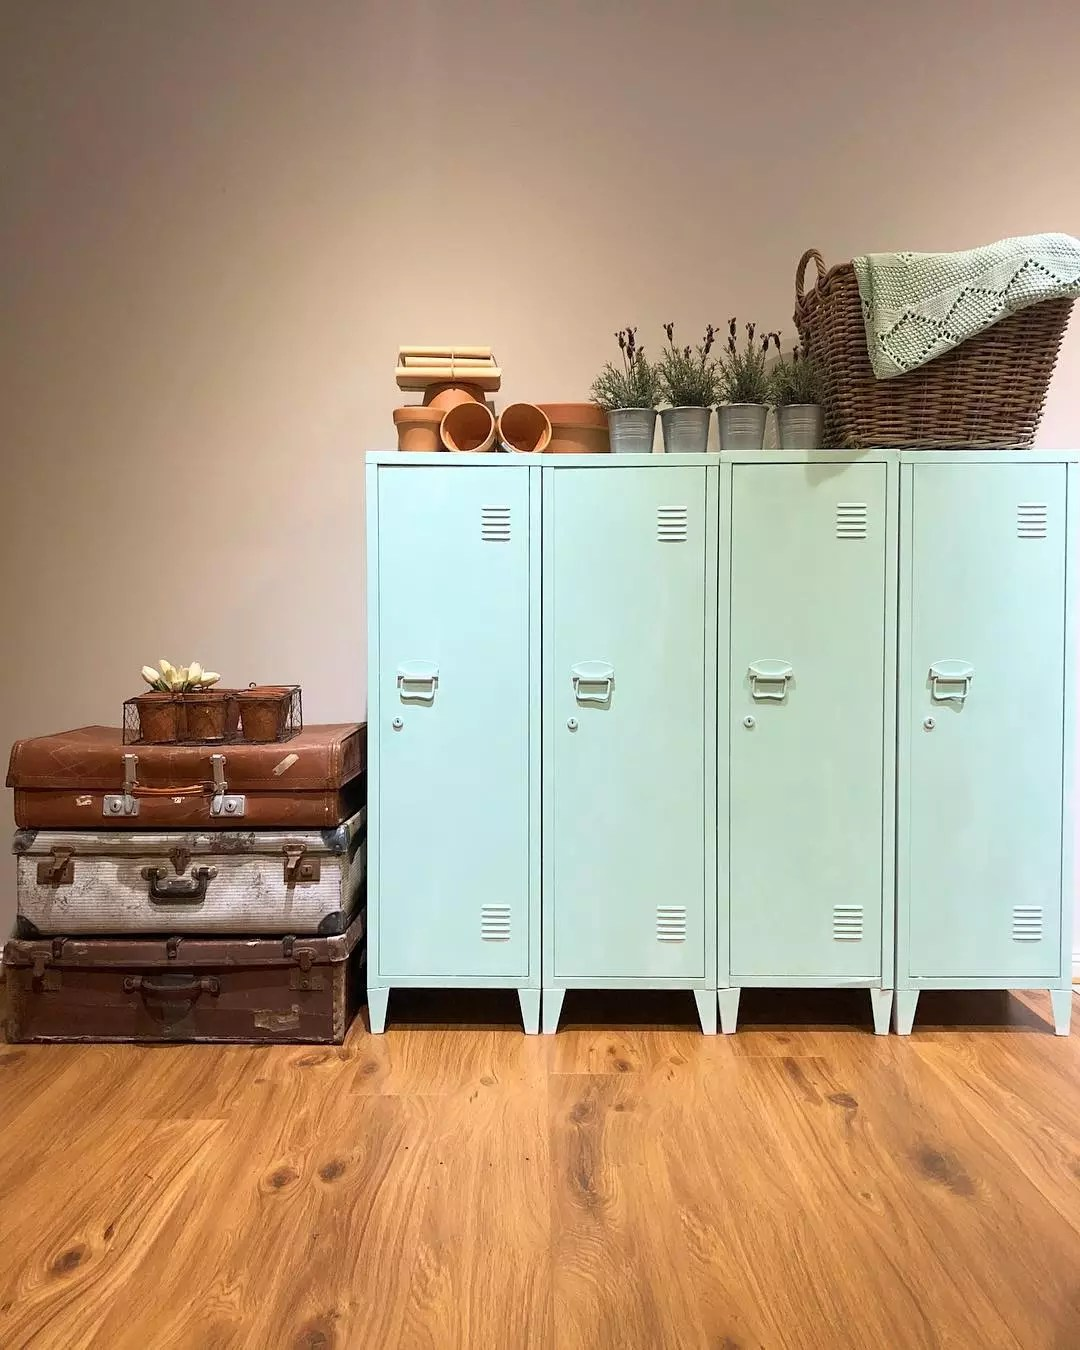 Old Light Blue Lockers Installed in a Basement for Storage. Photo by Instagram user @provincialfarmtouch